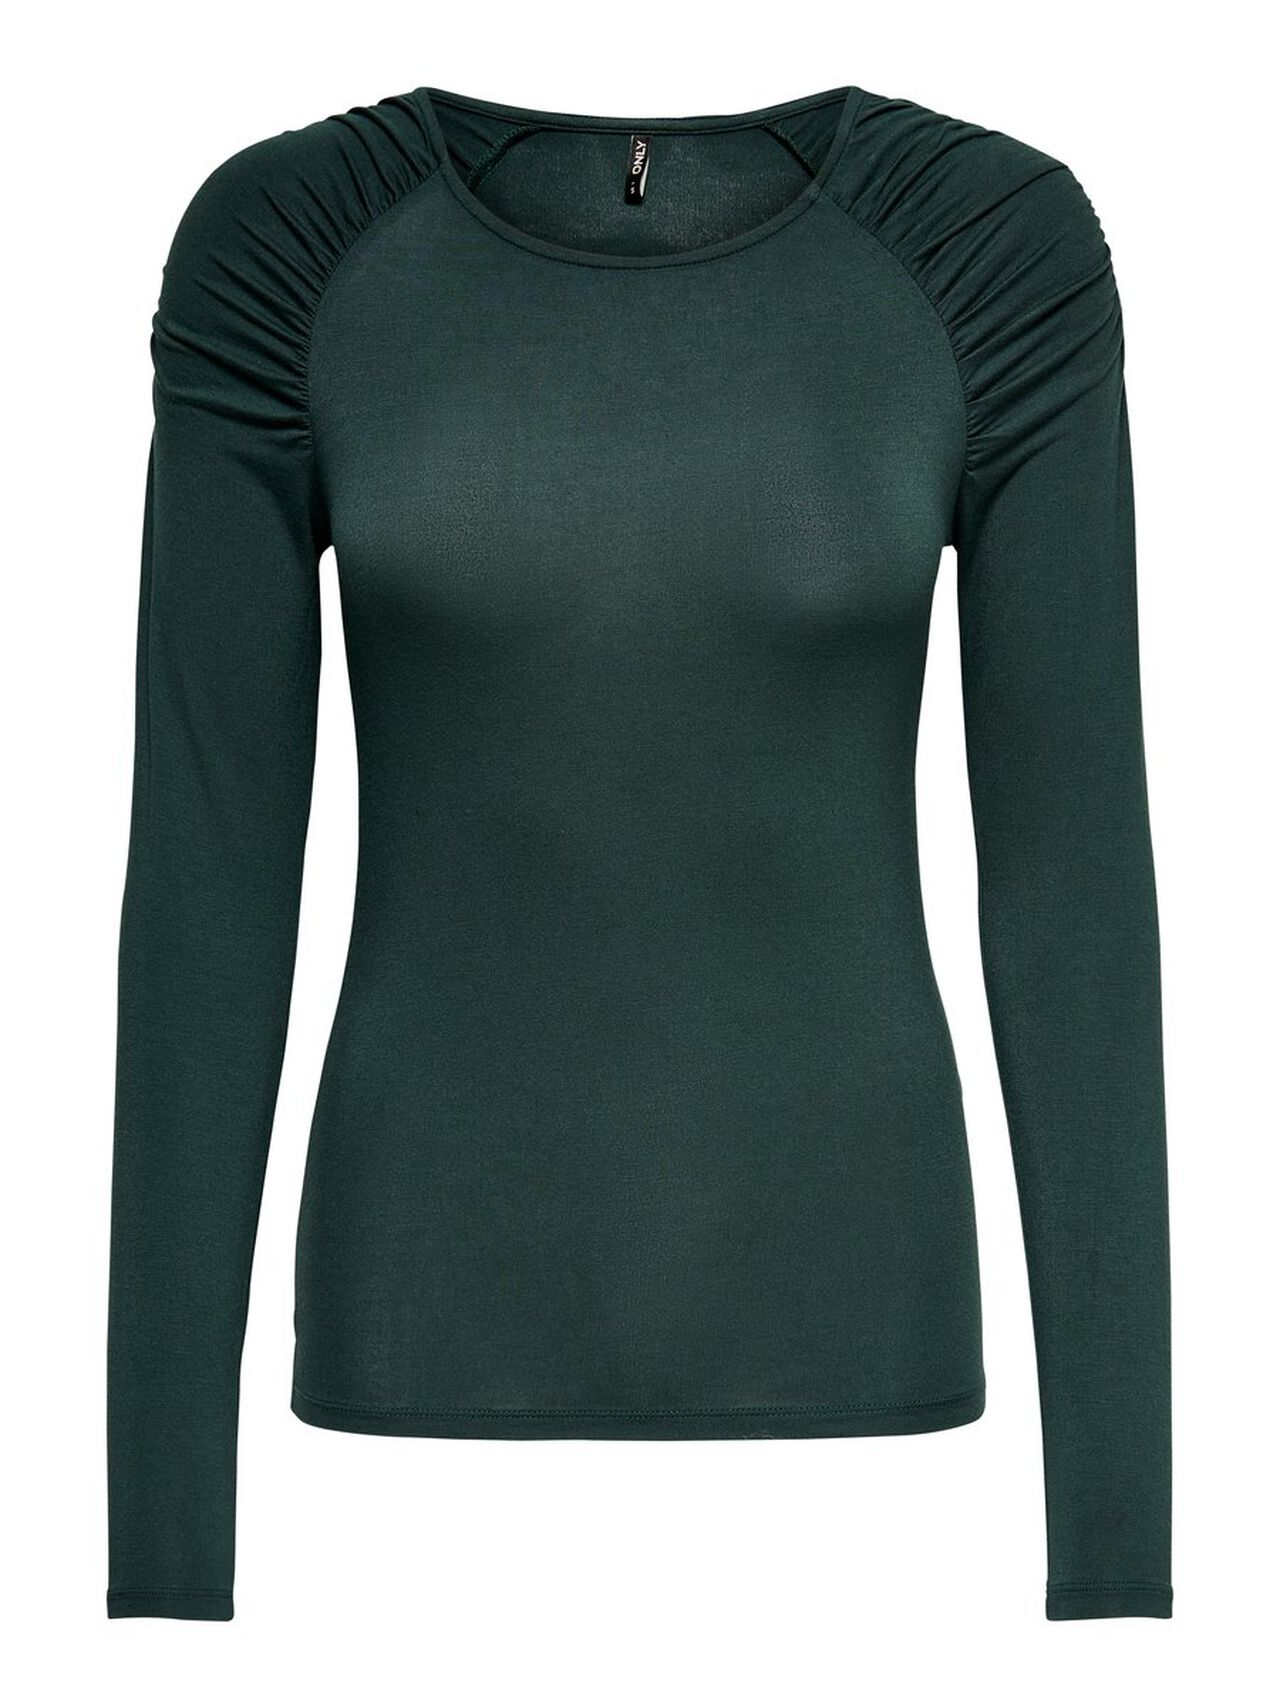 ONLY Wrinkle Long Sleeved Top Women Green